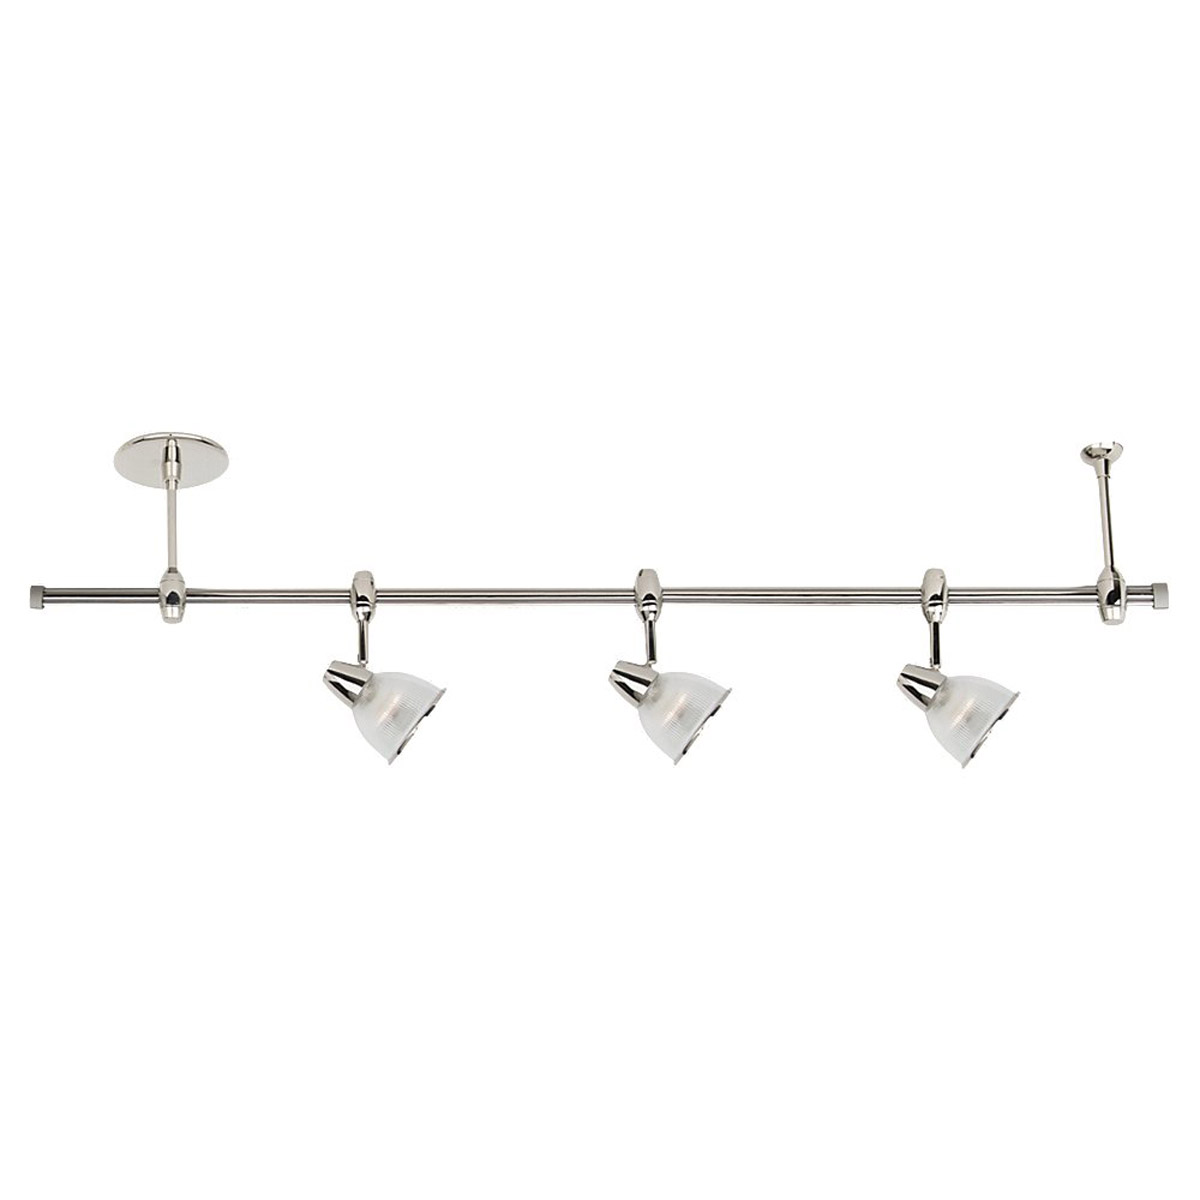 Sea Gull Lighting Ambiance Transitions 3 Light Rail Kit in Polished Nickel 94477-841 photo